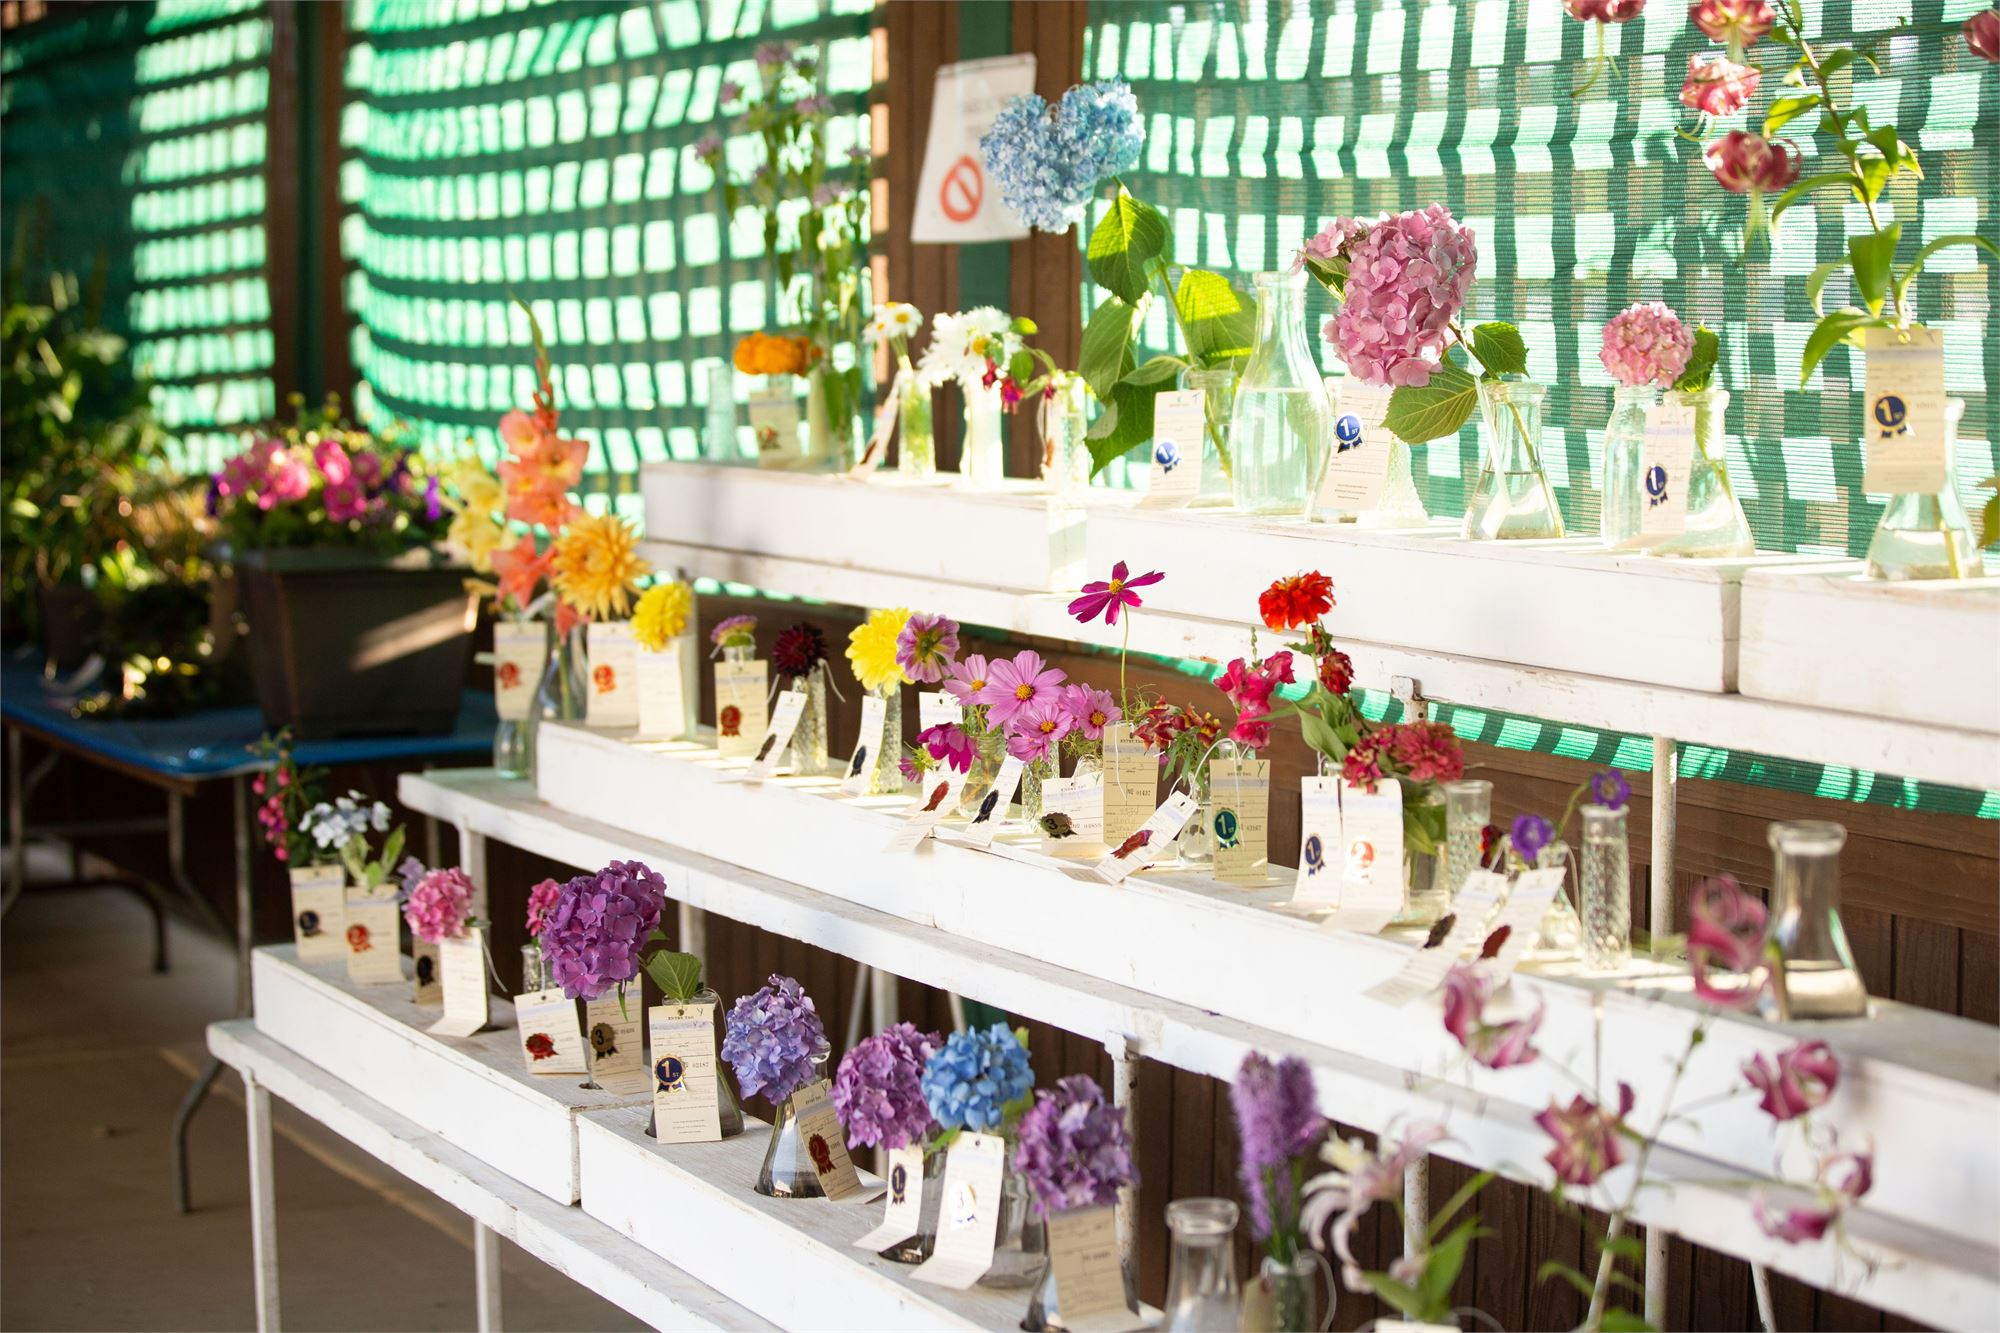 Photo: shelves of flowers in vases for show